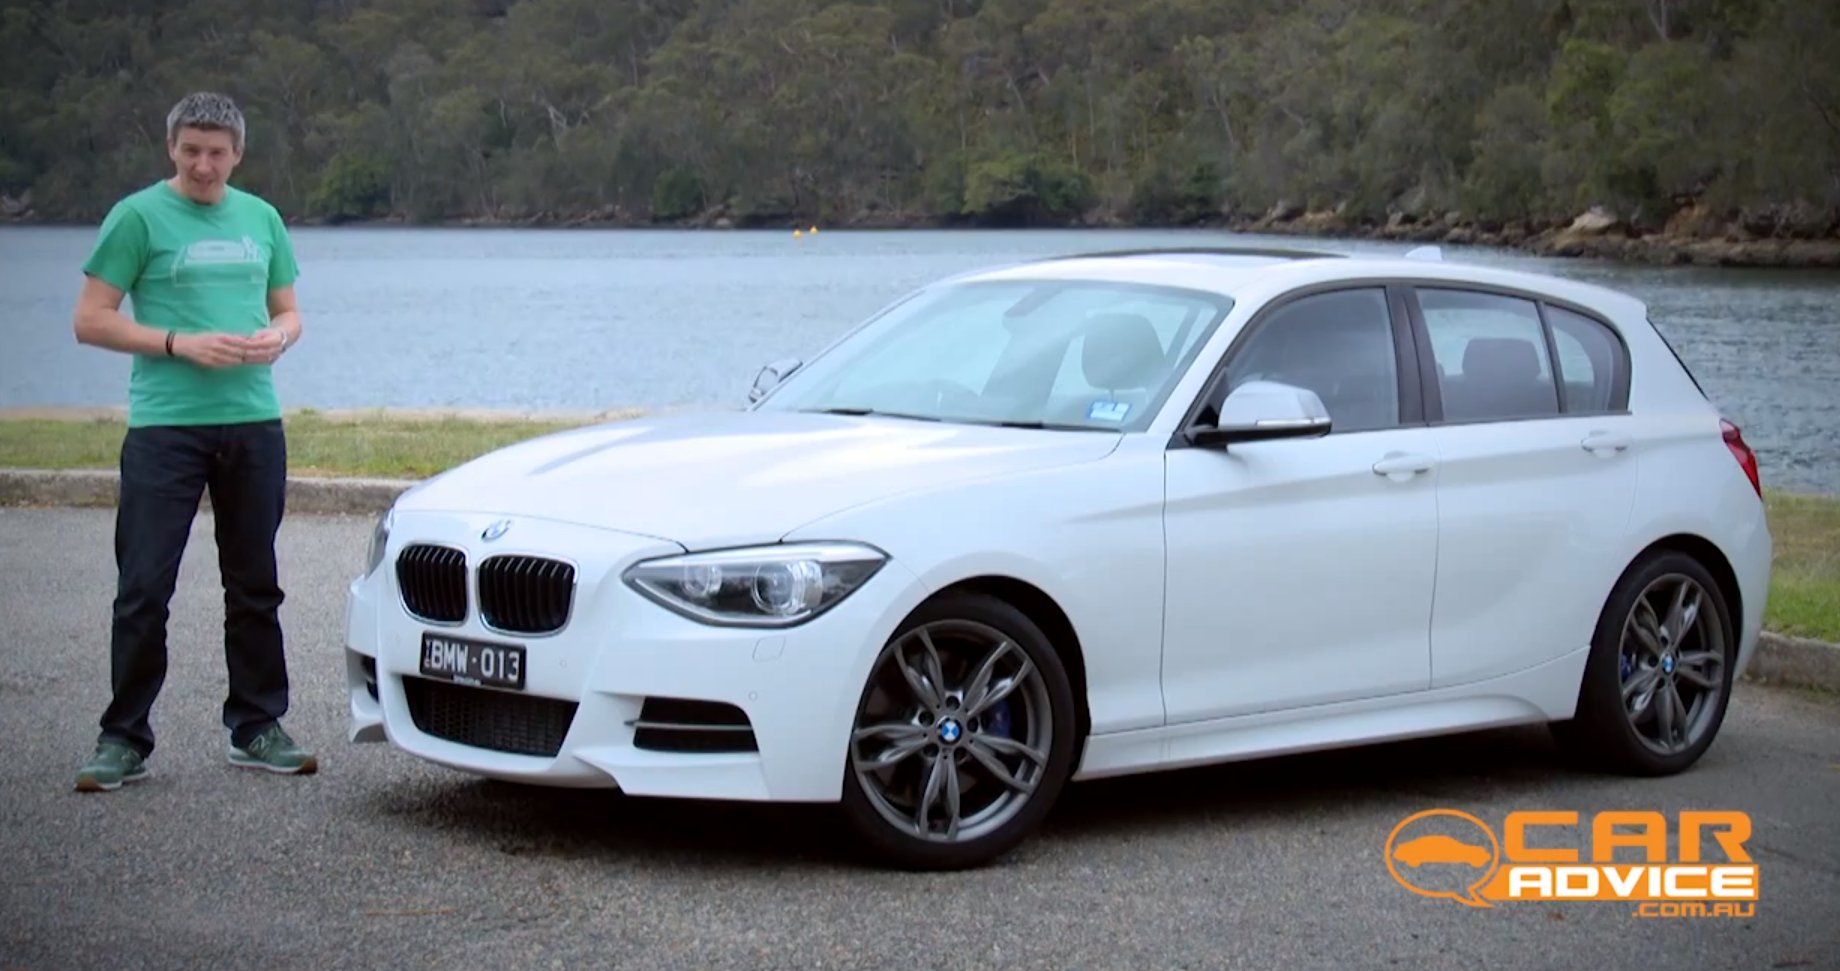 Bmw f20 m135i review by car advice autoevolution 6 photos asfbconference2016